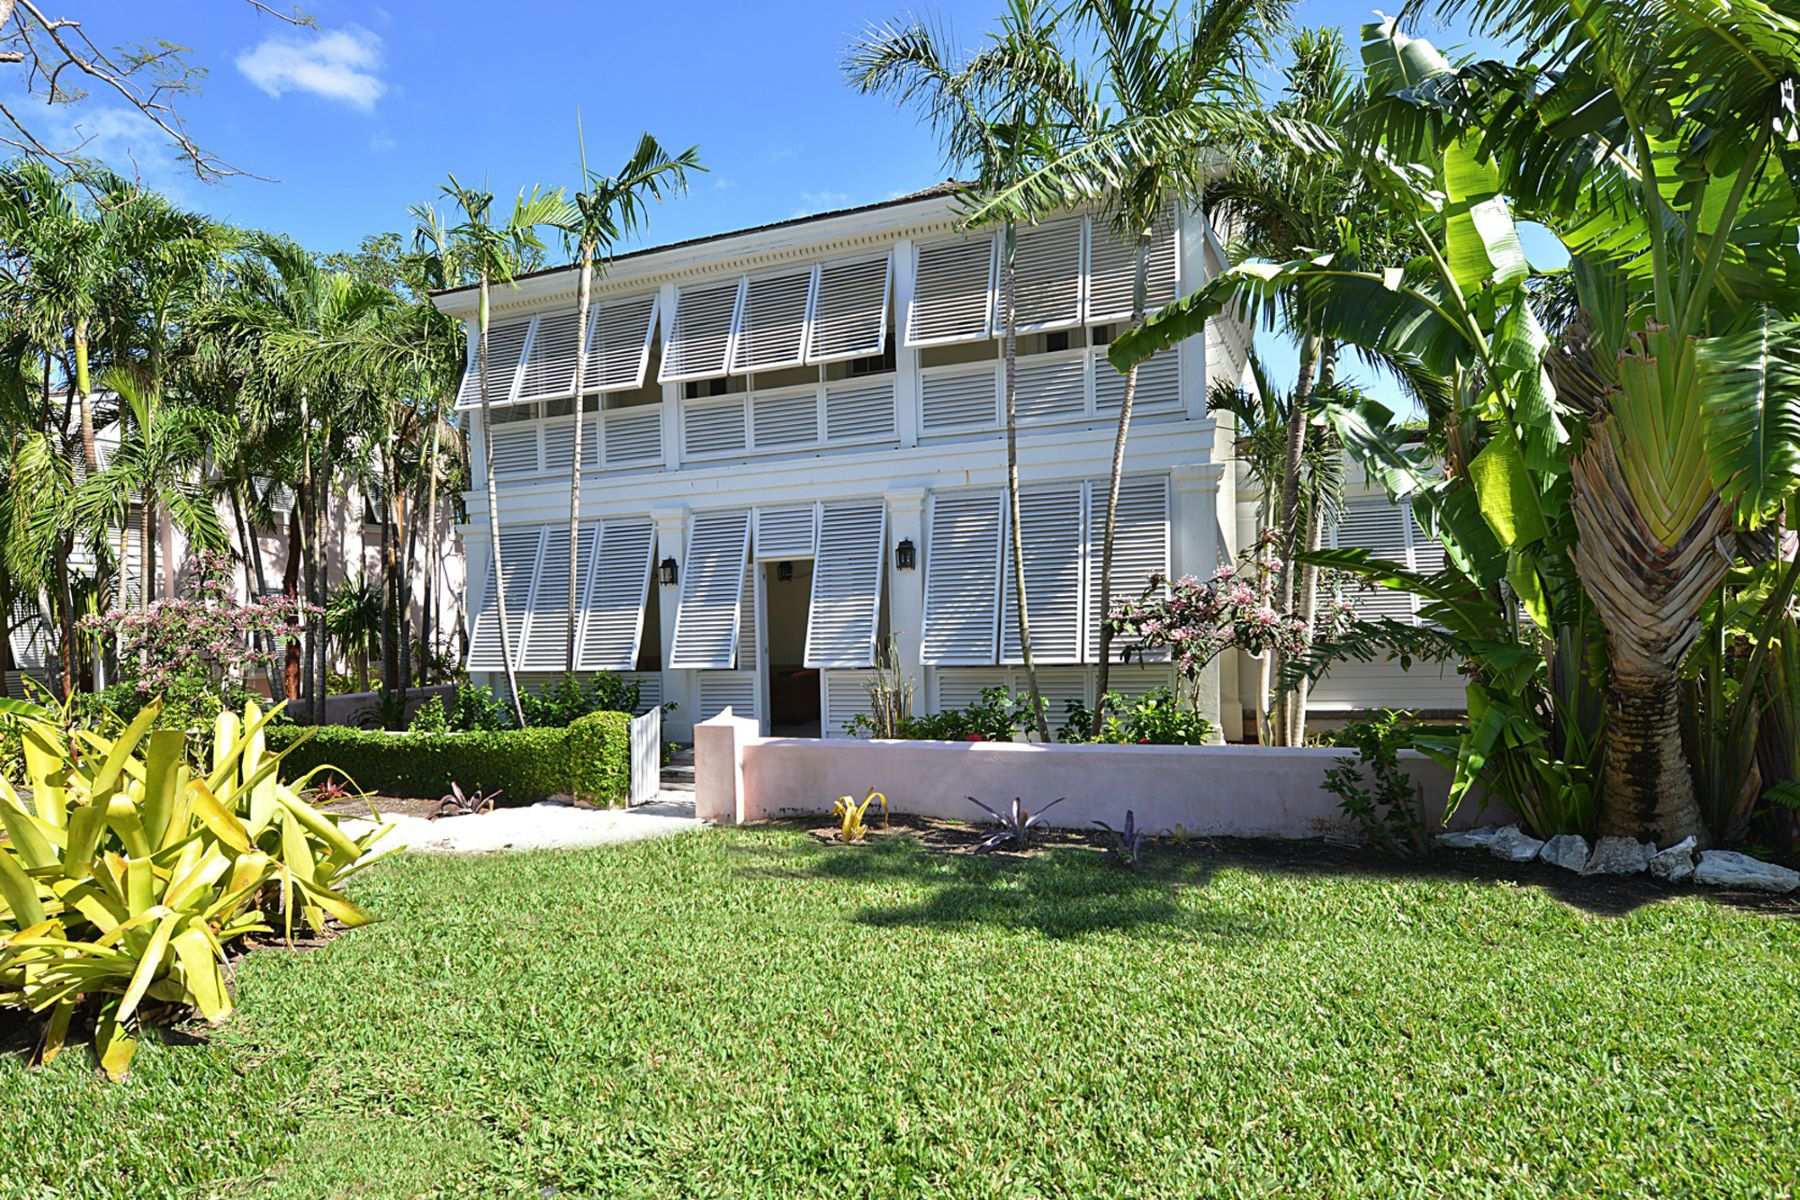 Single Family Home for Sale at Club Villa #8, Old Fort Bay Old Fort Bay, Nassau And Paradise Island Bahamas